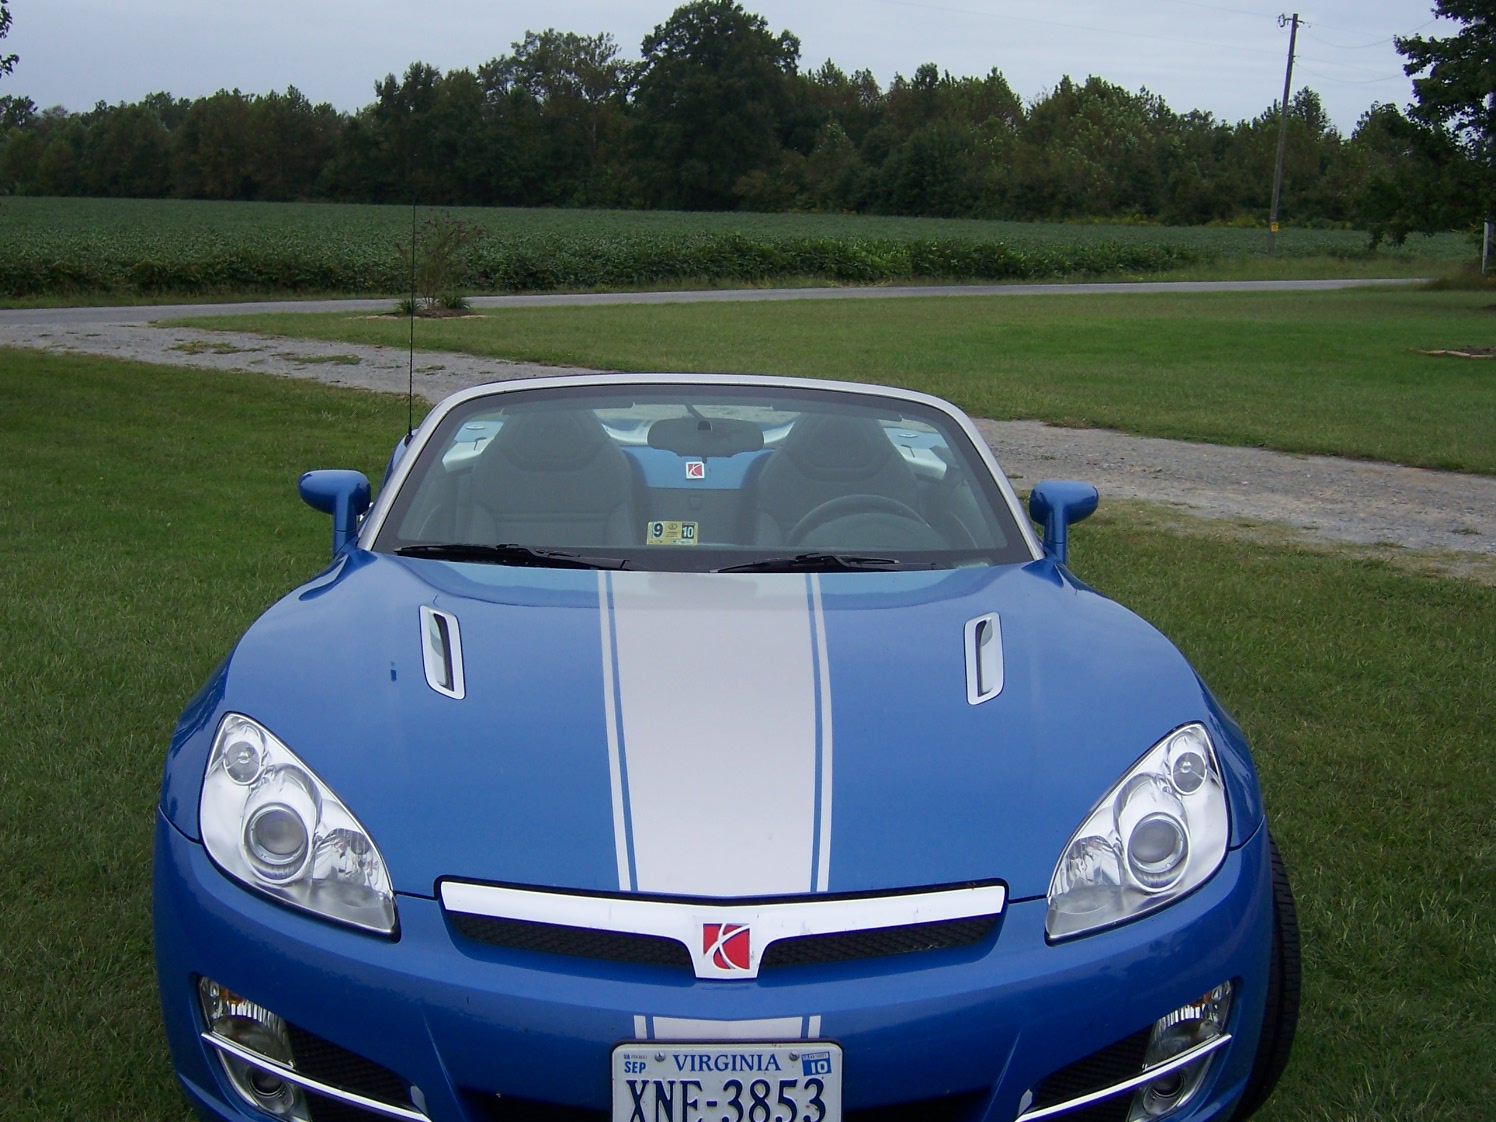 Hydro Blue 2009 limited edition saturn sky for sale-017.jpg